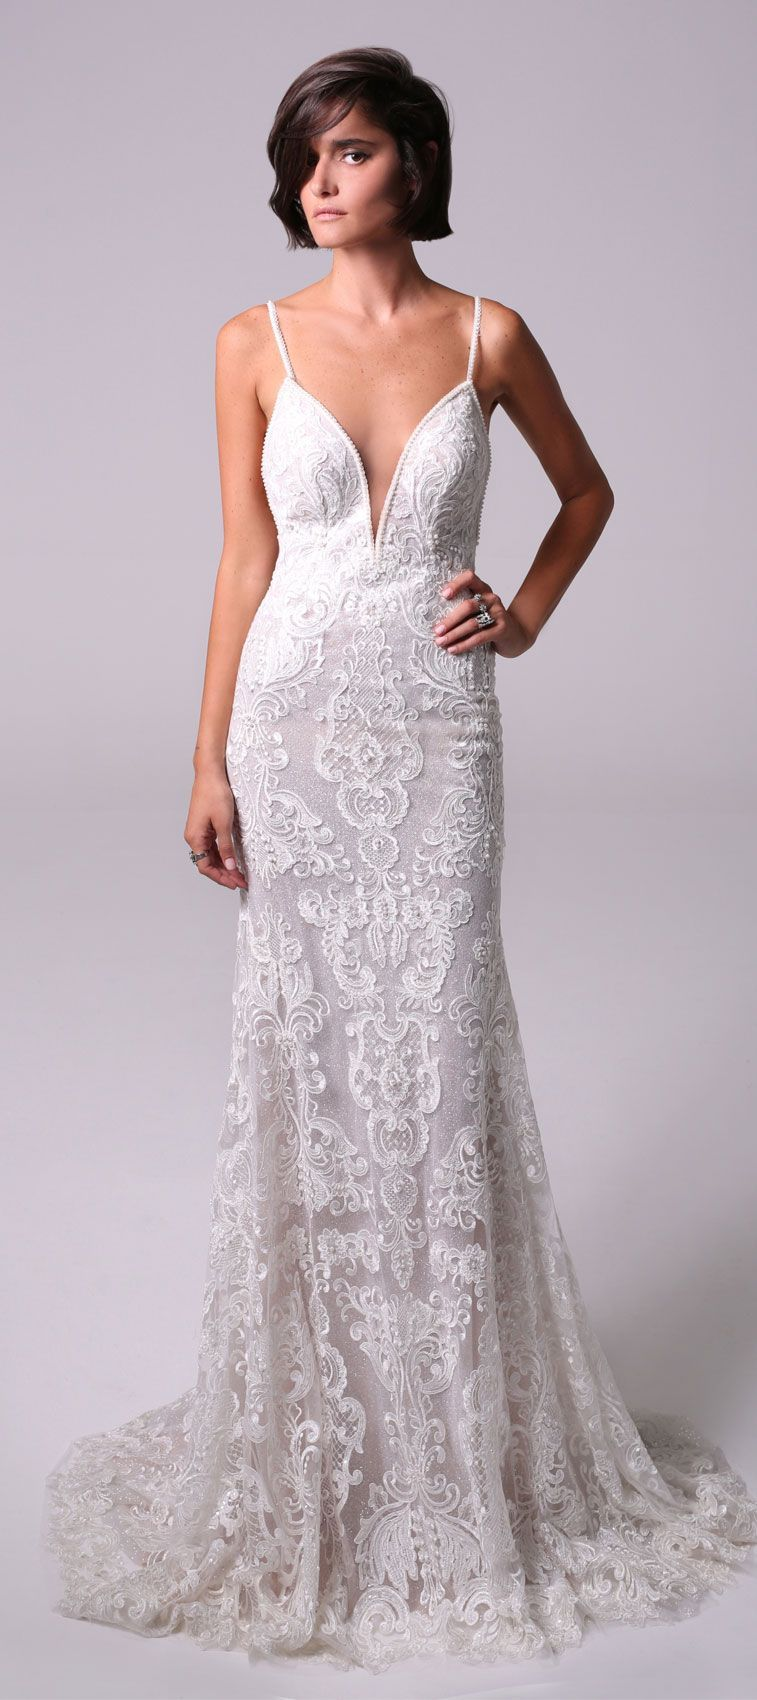 Low back lace mermaid wedding dress  Michal Medina  Wedding Dresses  Mermaid wedding dresses